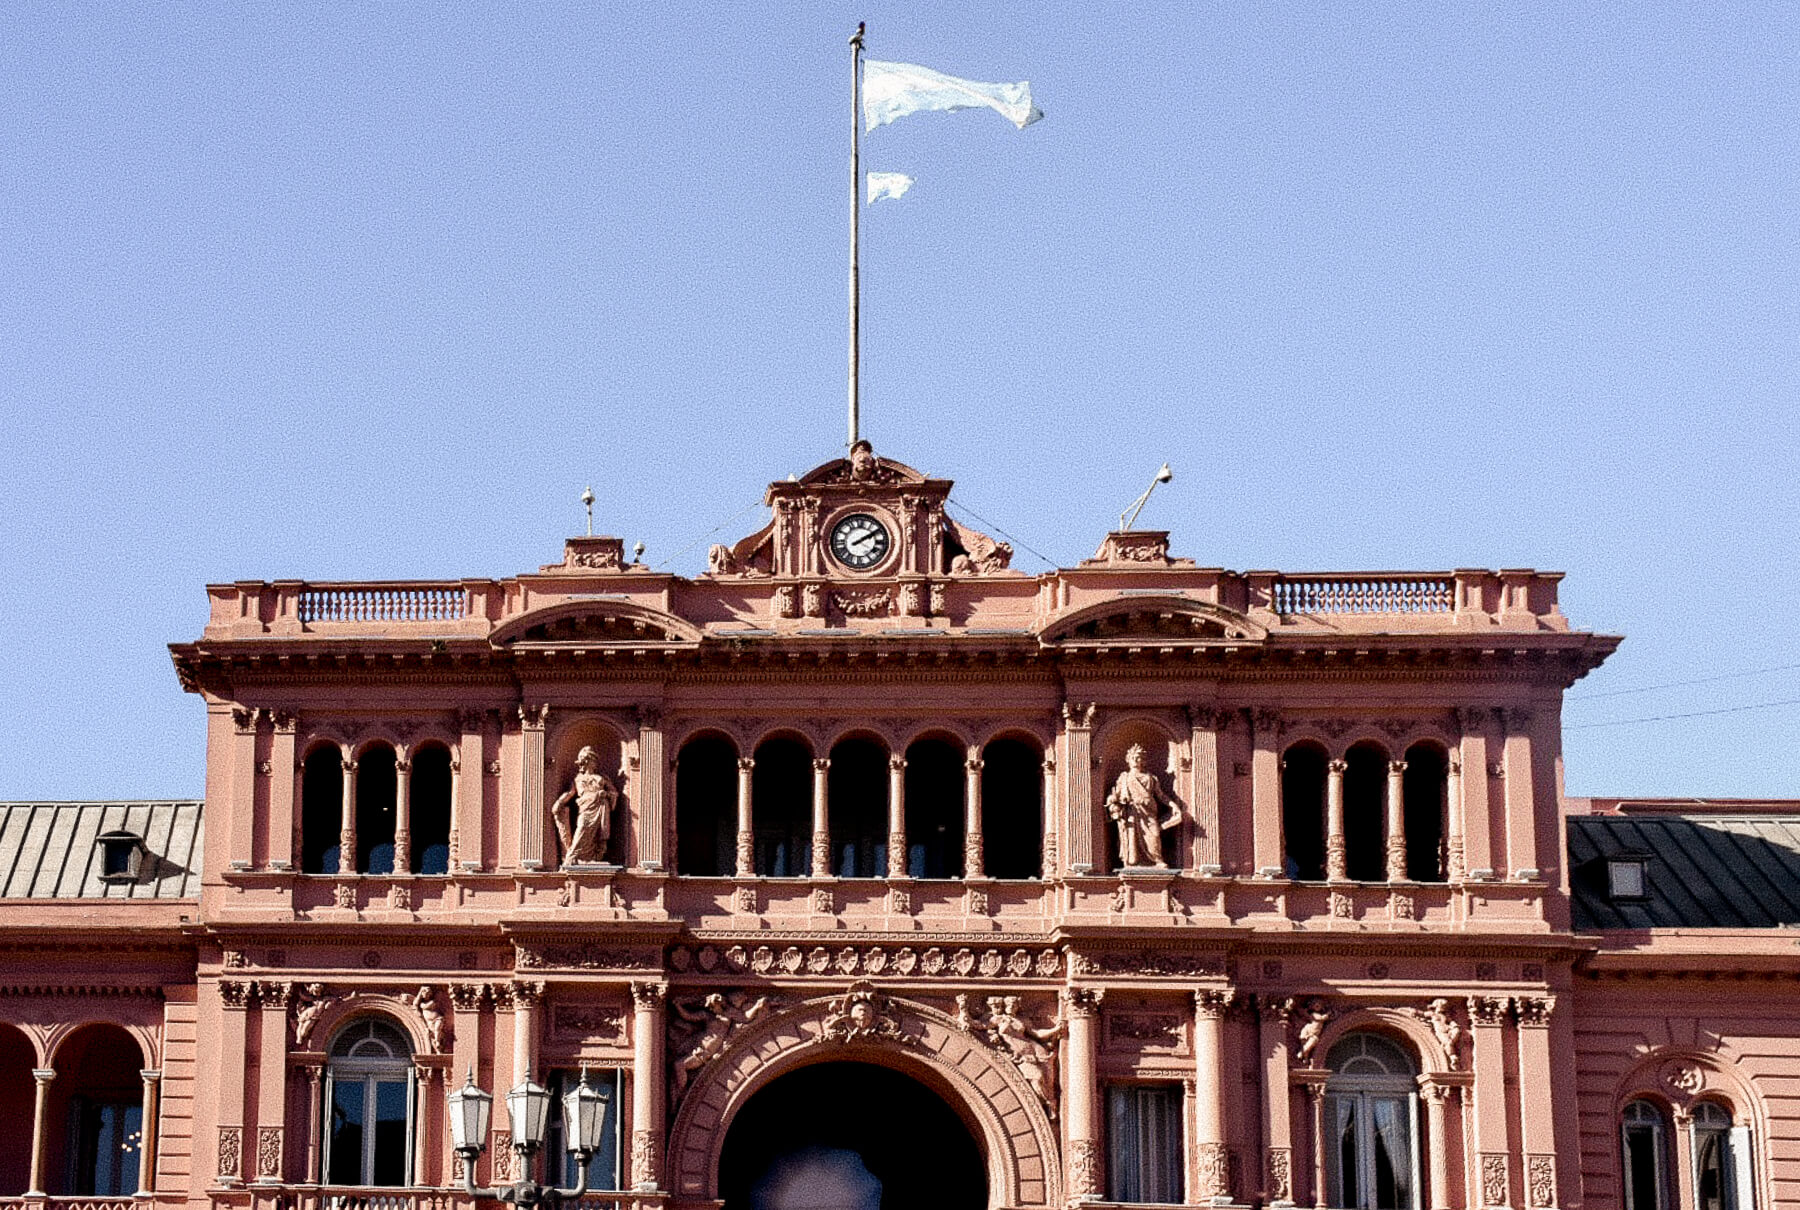 A terra cotter coloured parliament building with the Argentina flag waving above it